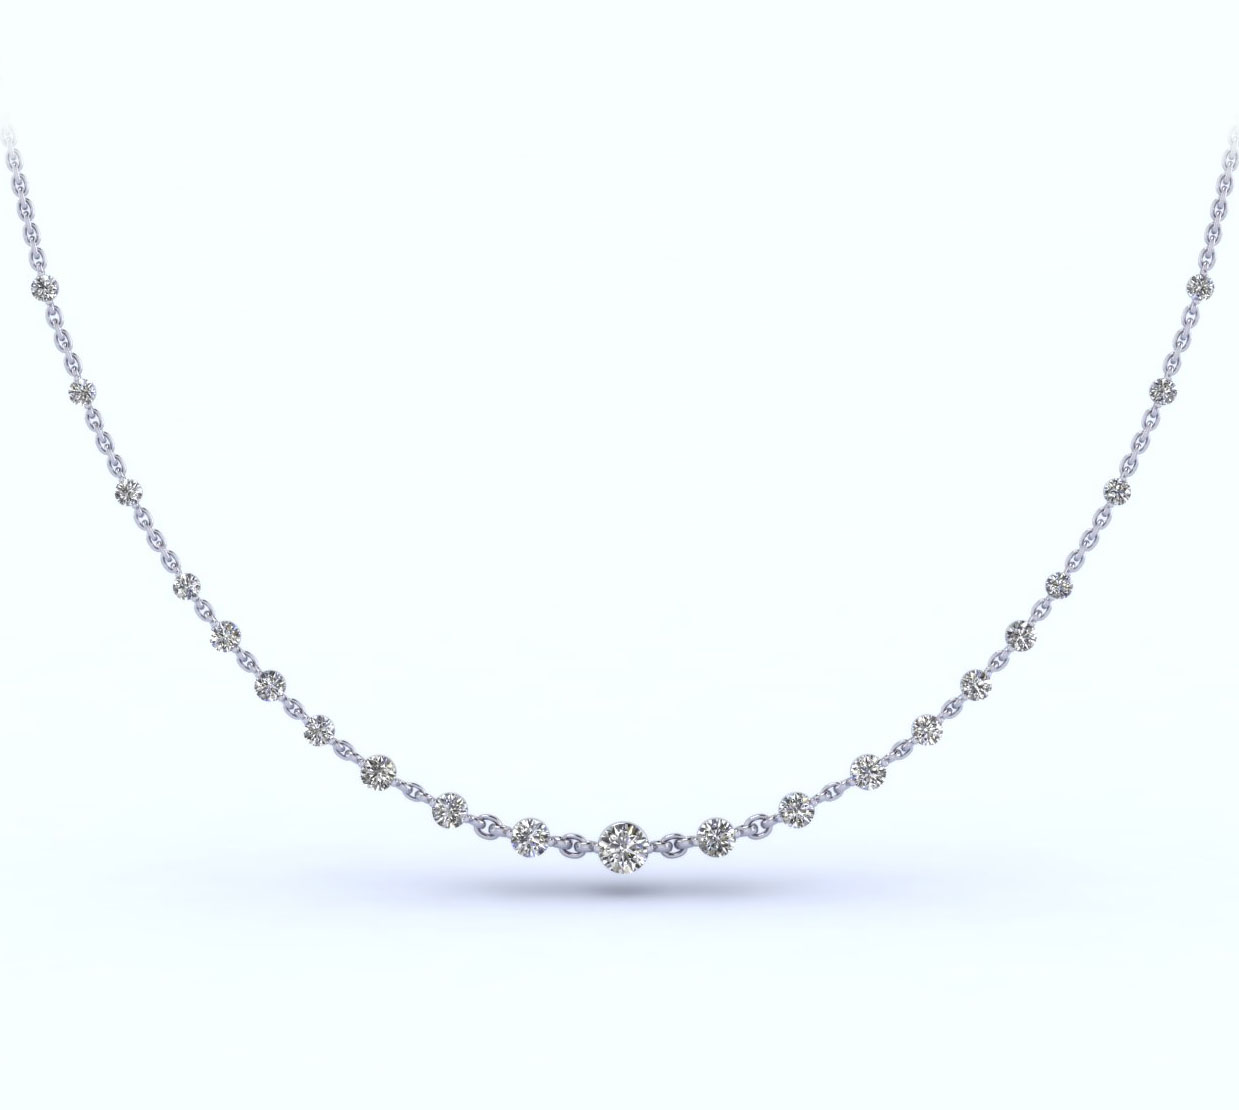 Largest Collection of Quality Diamond Necklaces & Pendants